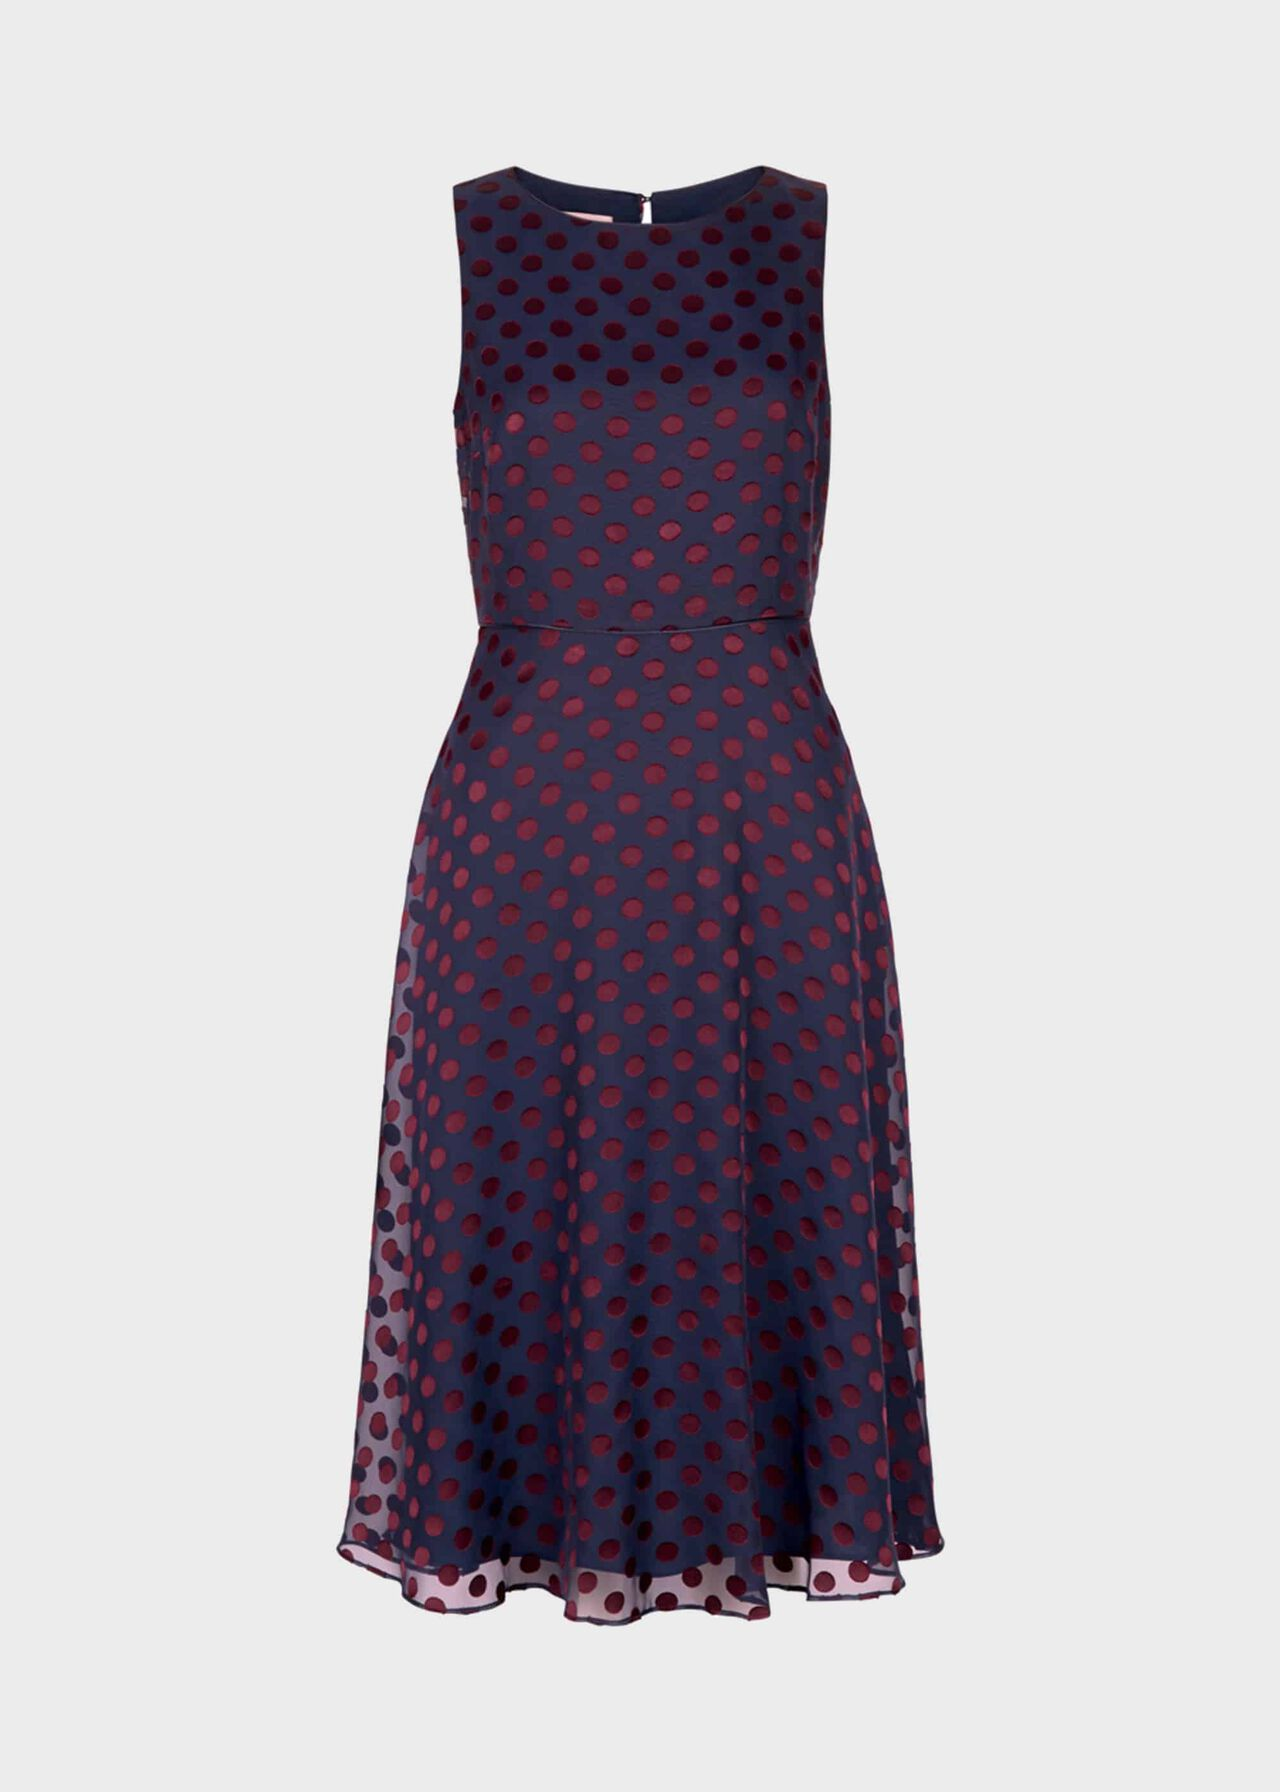 Adeline Dress Navy Burgundy